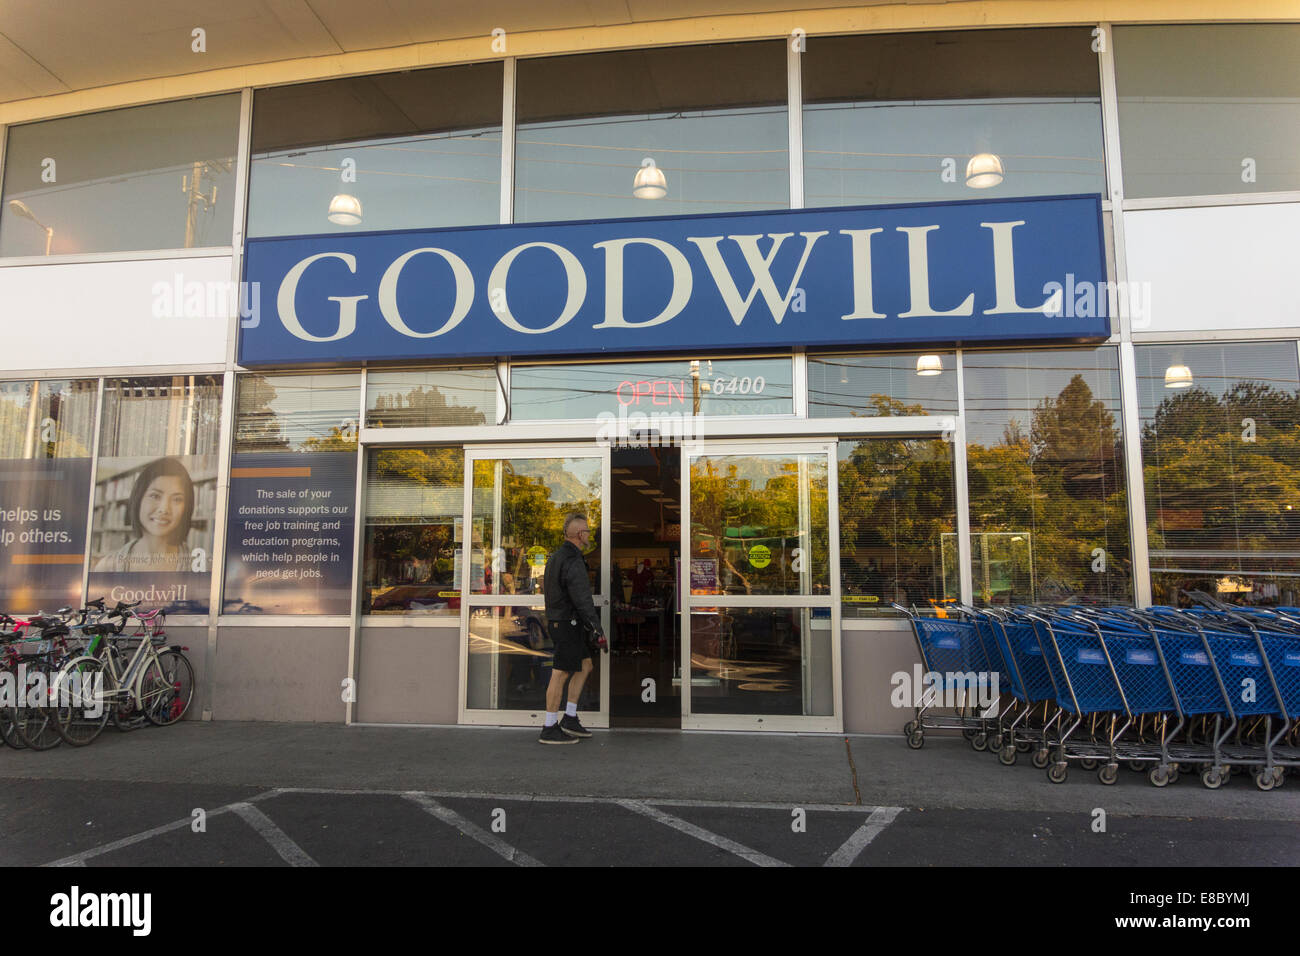 exterior of Goodwill store, Seattle, USA - Stock Image